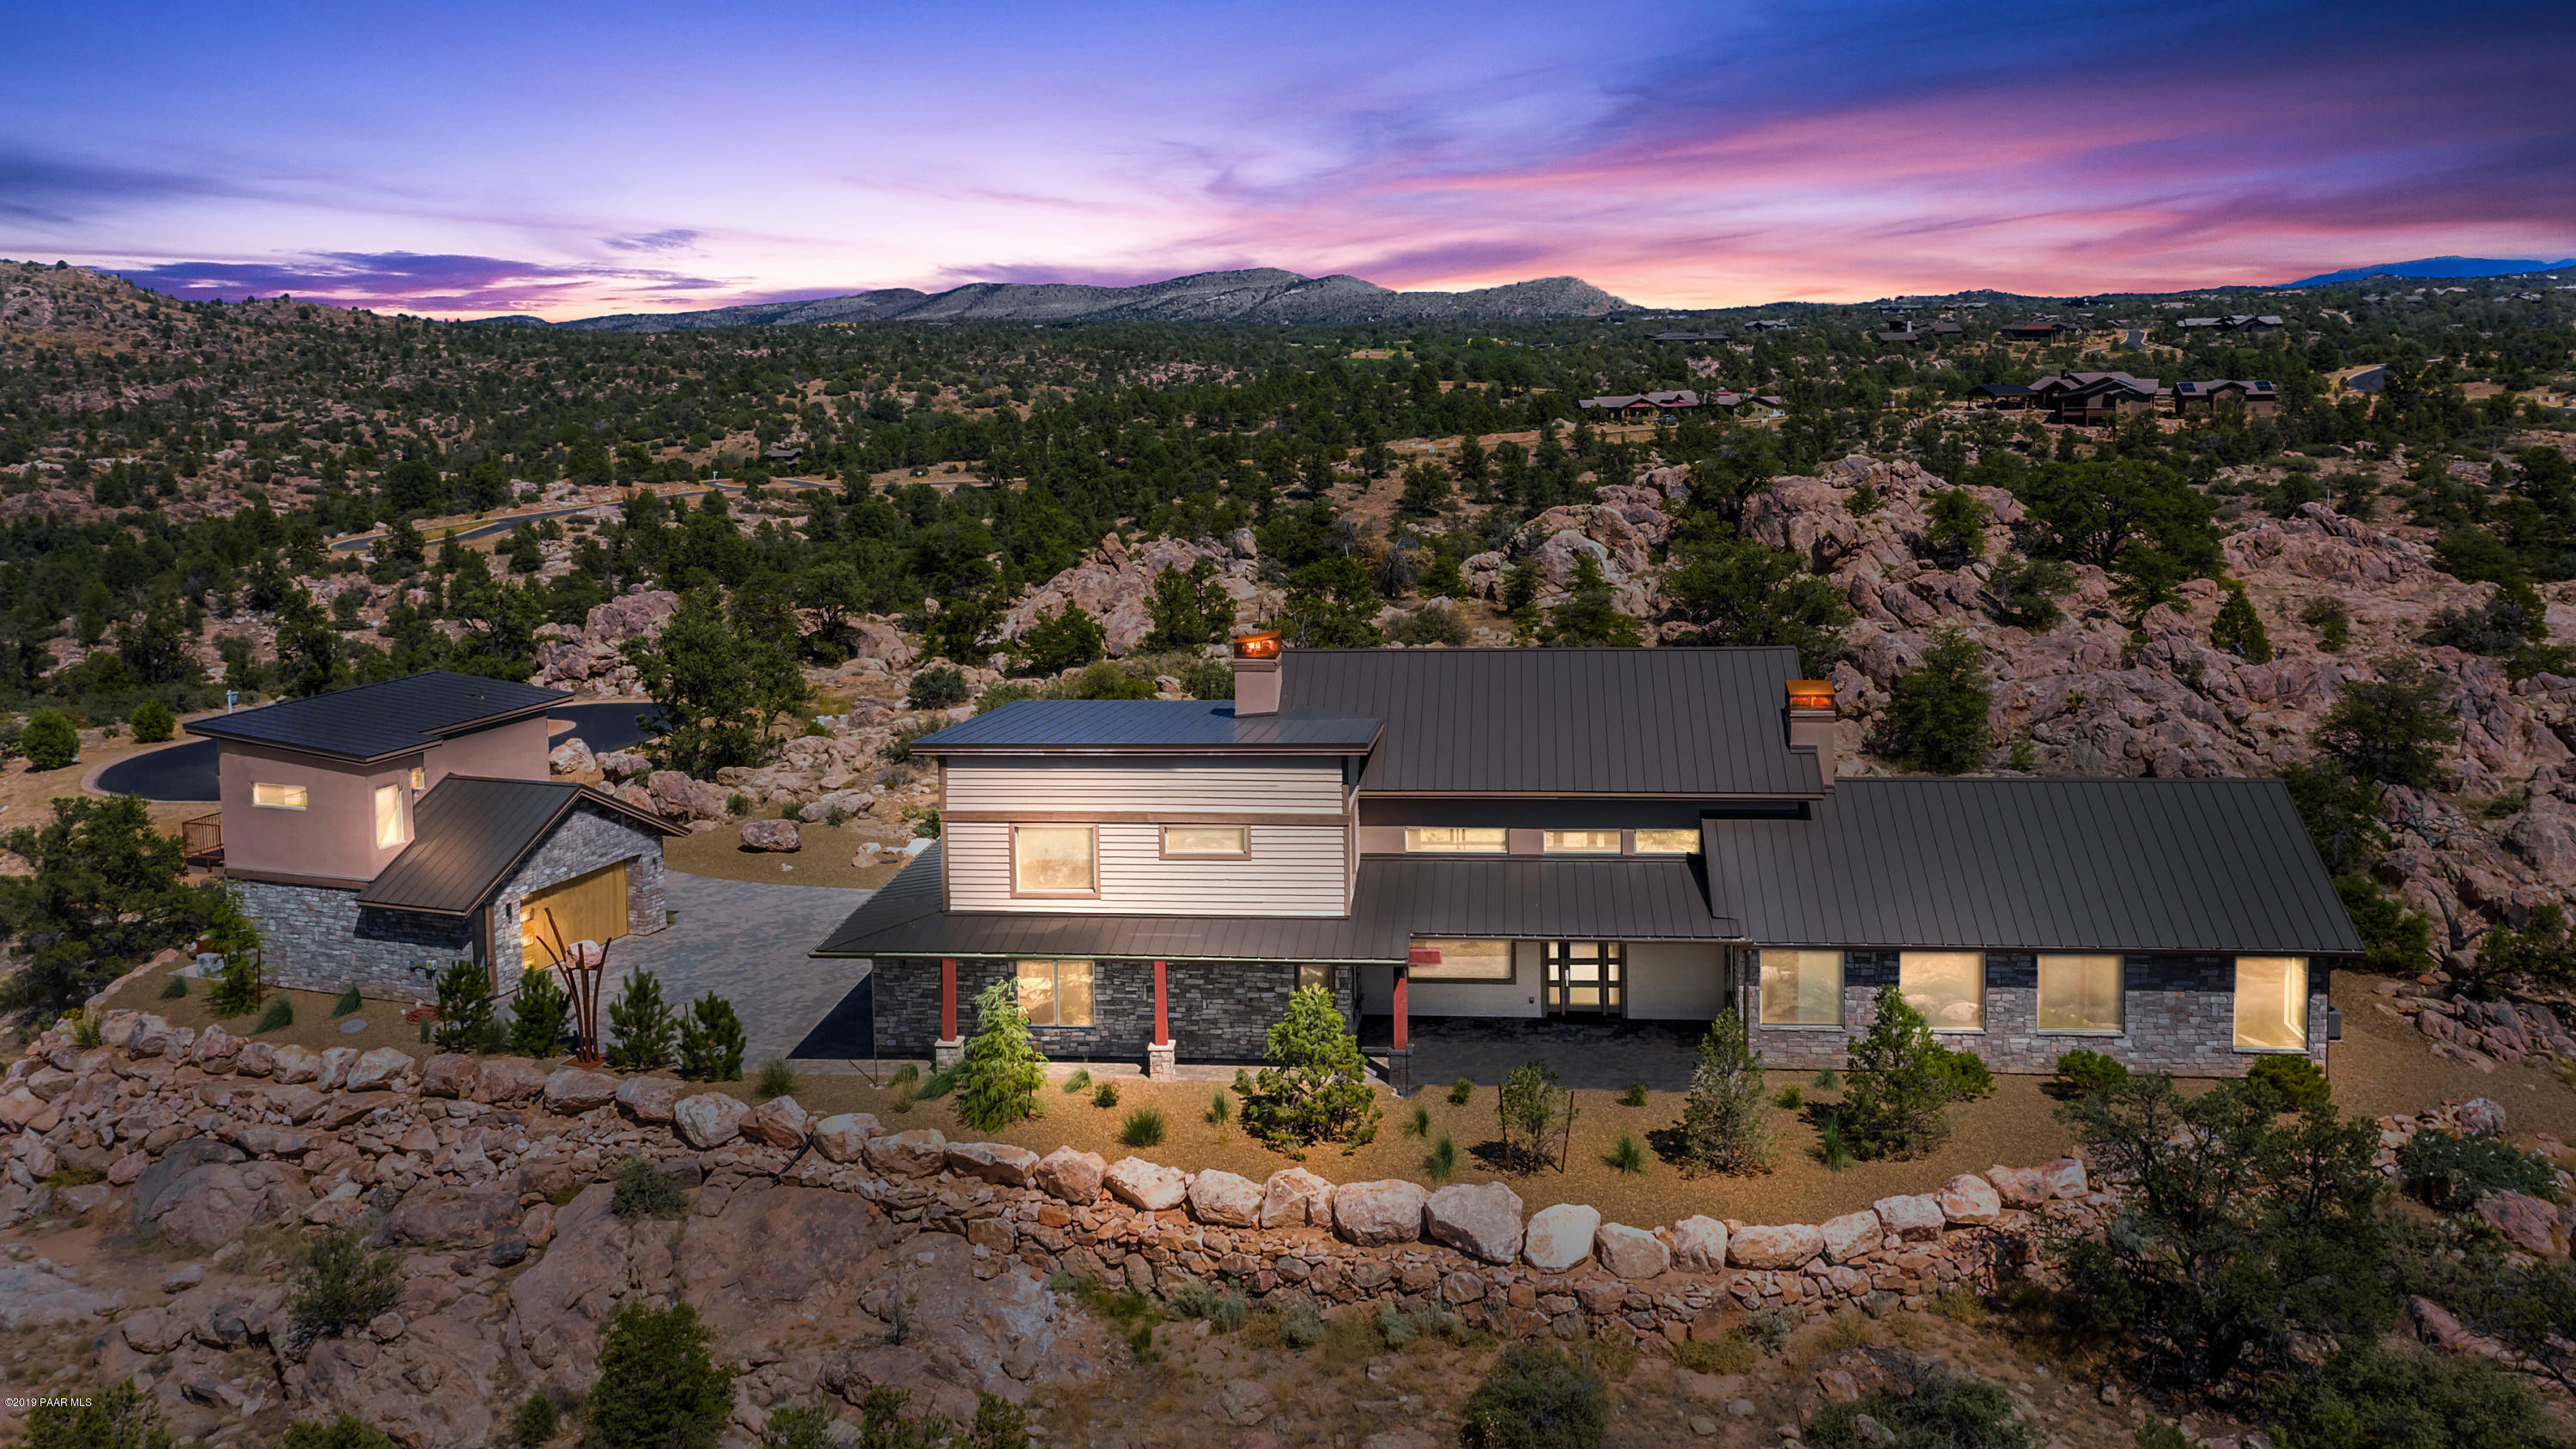 12955 W Cooper Morgan Trail, Prescott, Arizona